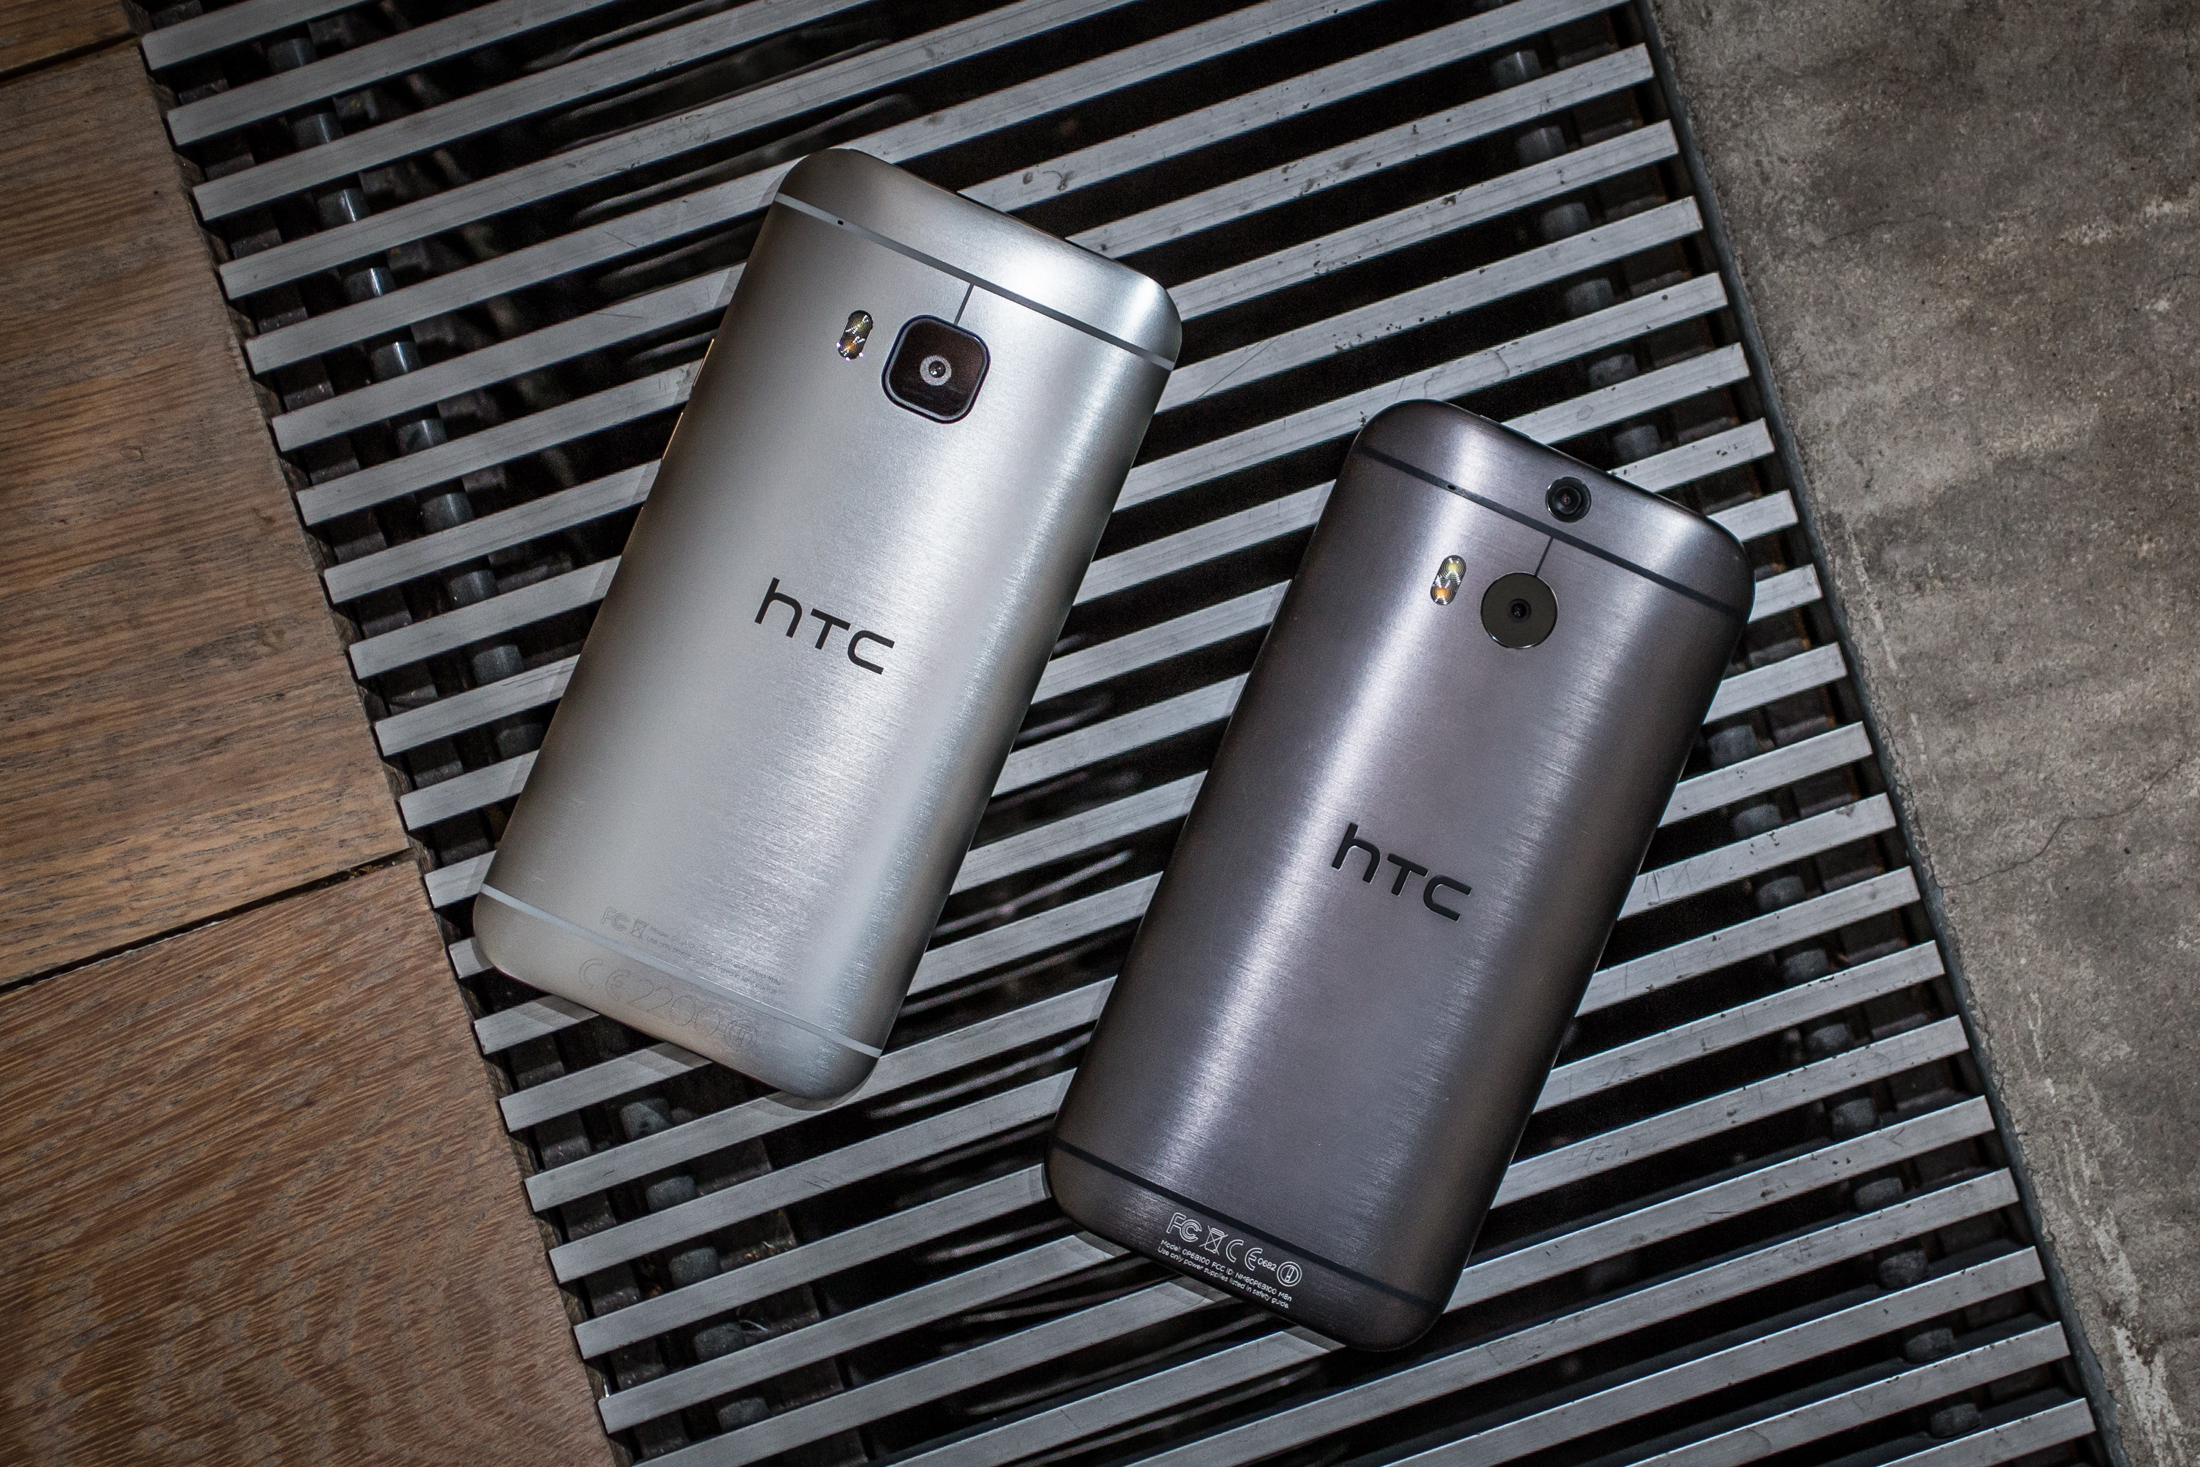 htc-one-m9-product-17.jpg